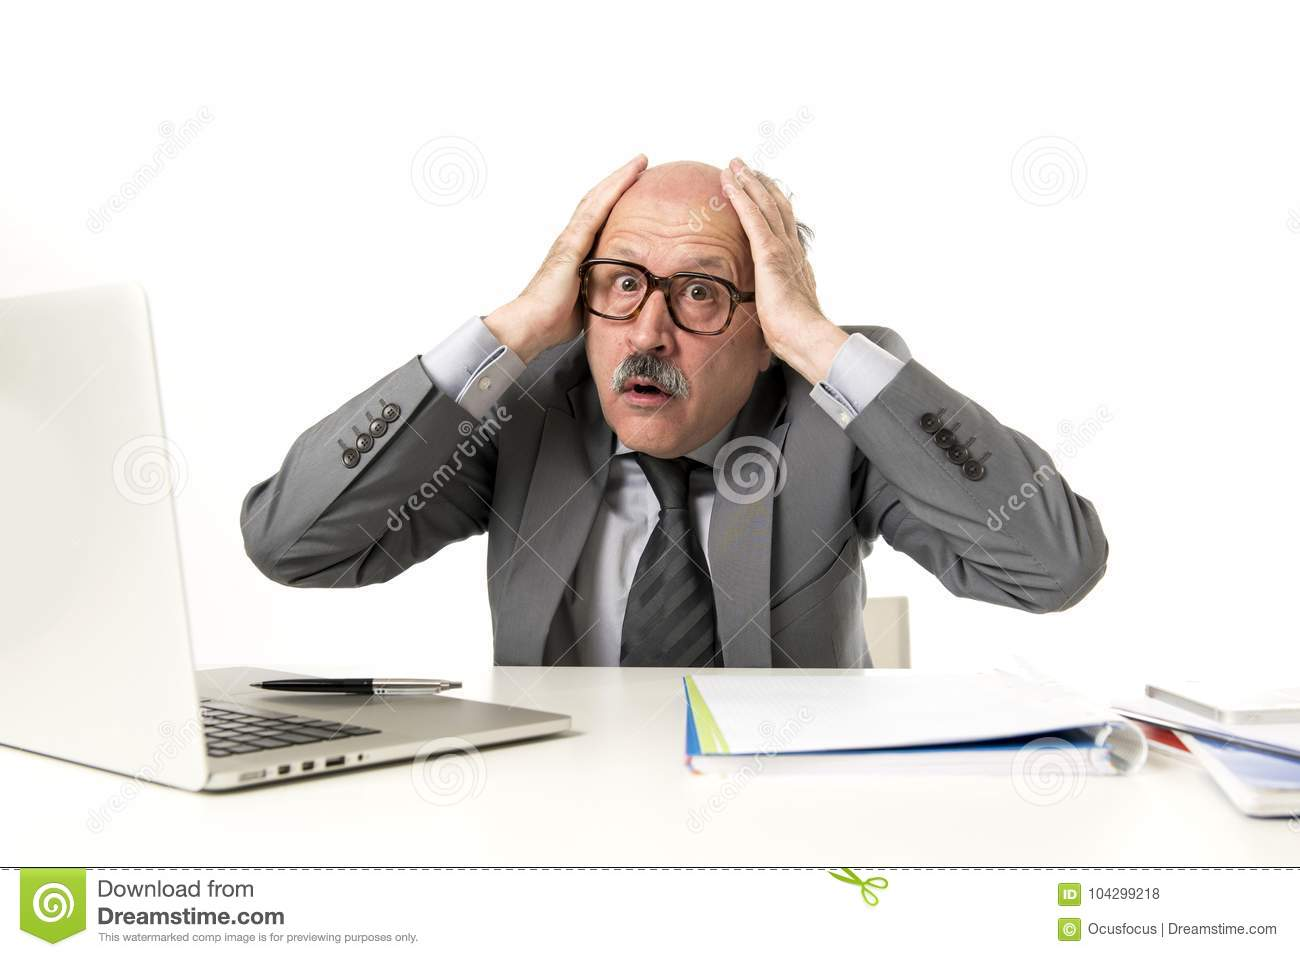 Senior mature busy business man with bald head on his 60s working stressed and frustrated at office computer laptop desk looking a